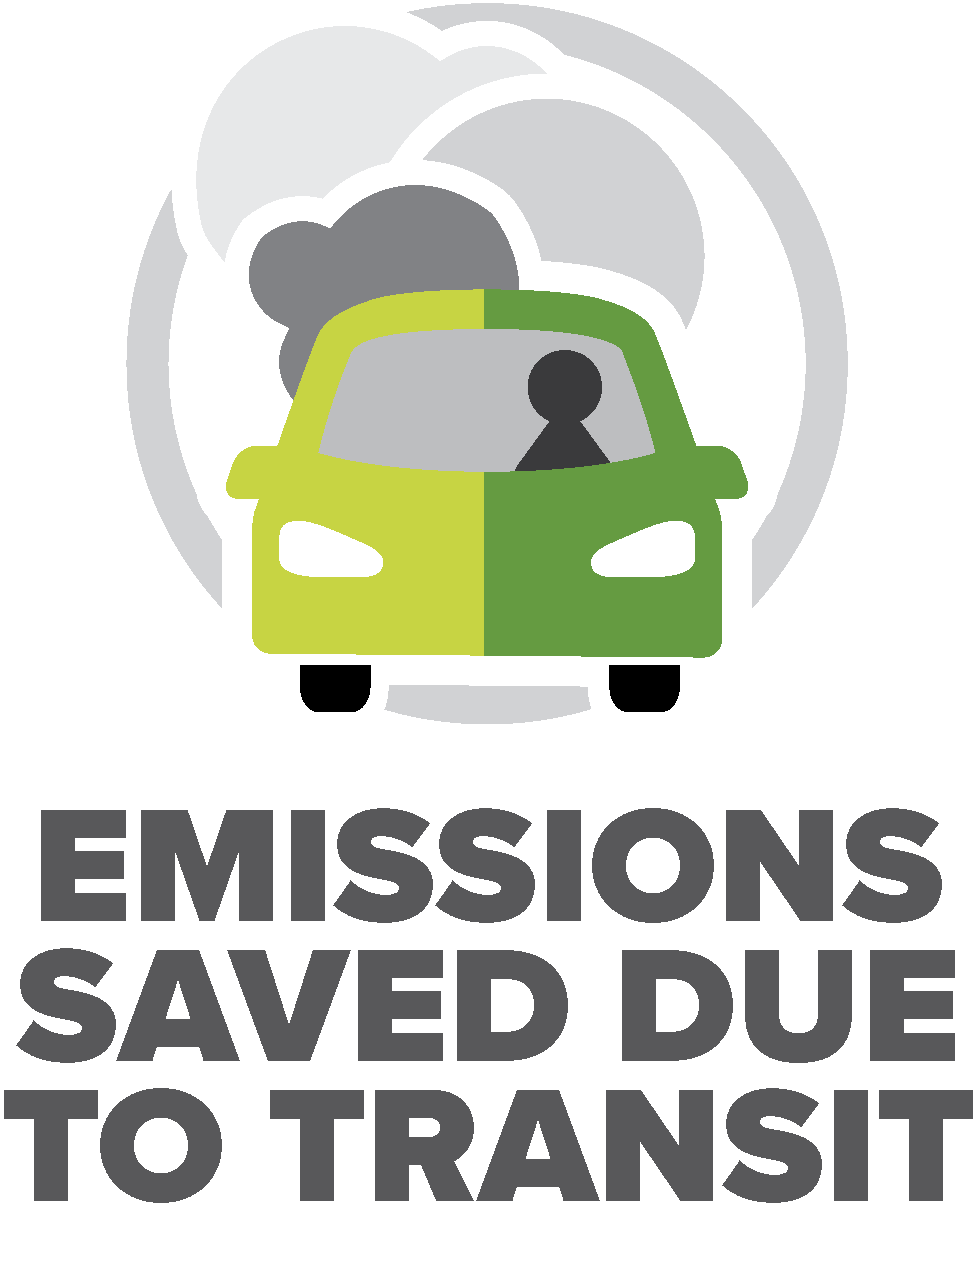 emissions saved due to transit